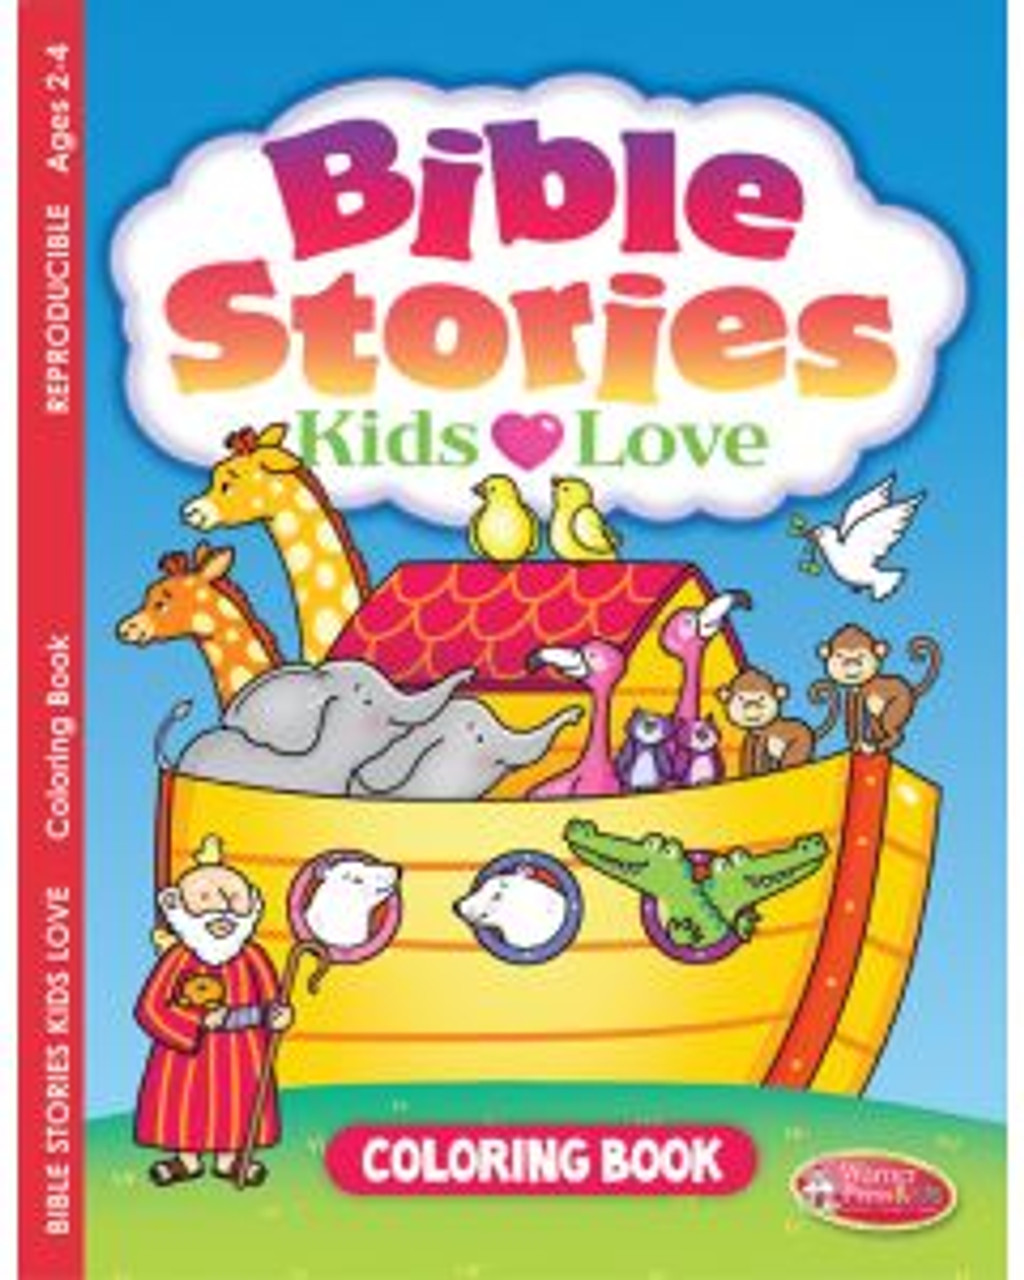 Bible Stories Kids Love (coloring book)